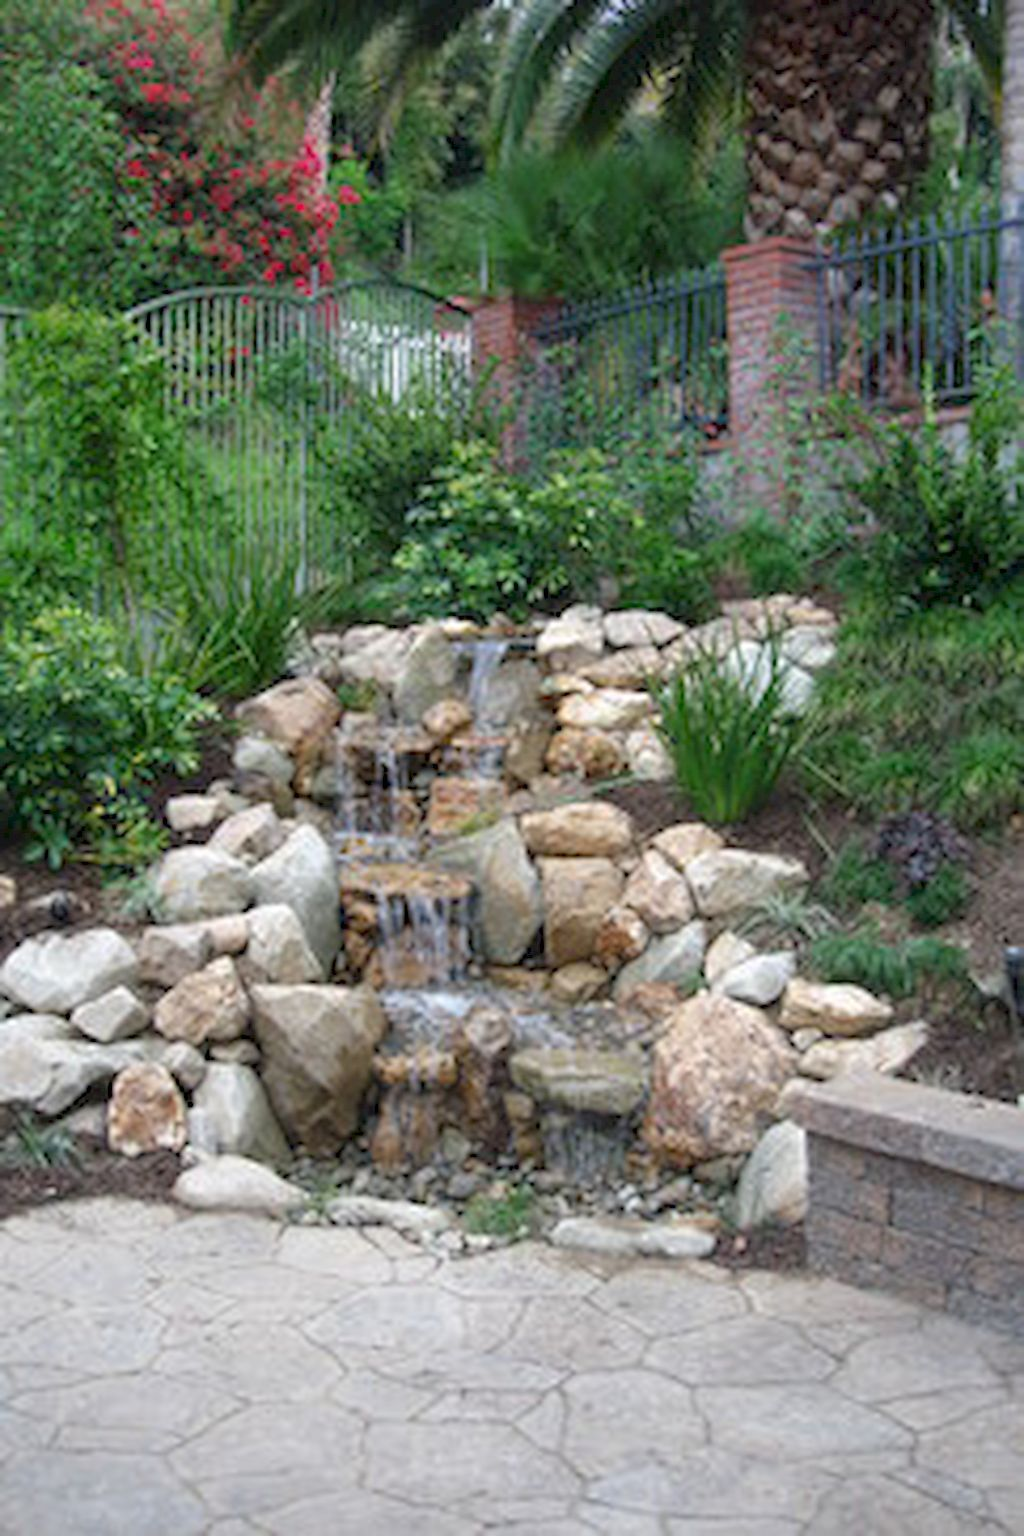 60 awesome eclectic backyard ideas water features in the on awesome backyard garden landscaping ideas that looks amazing id=86027